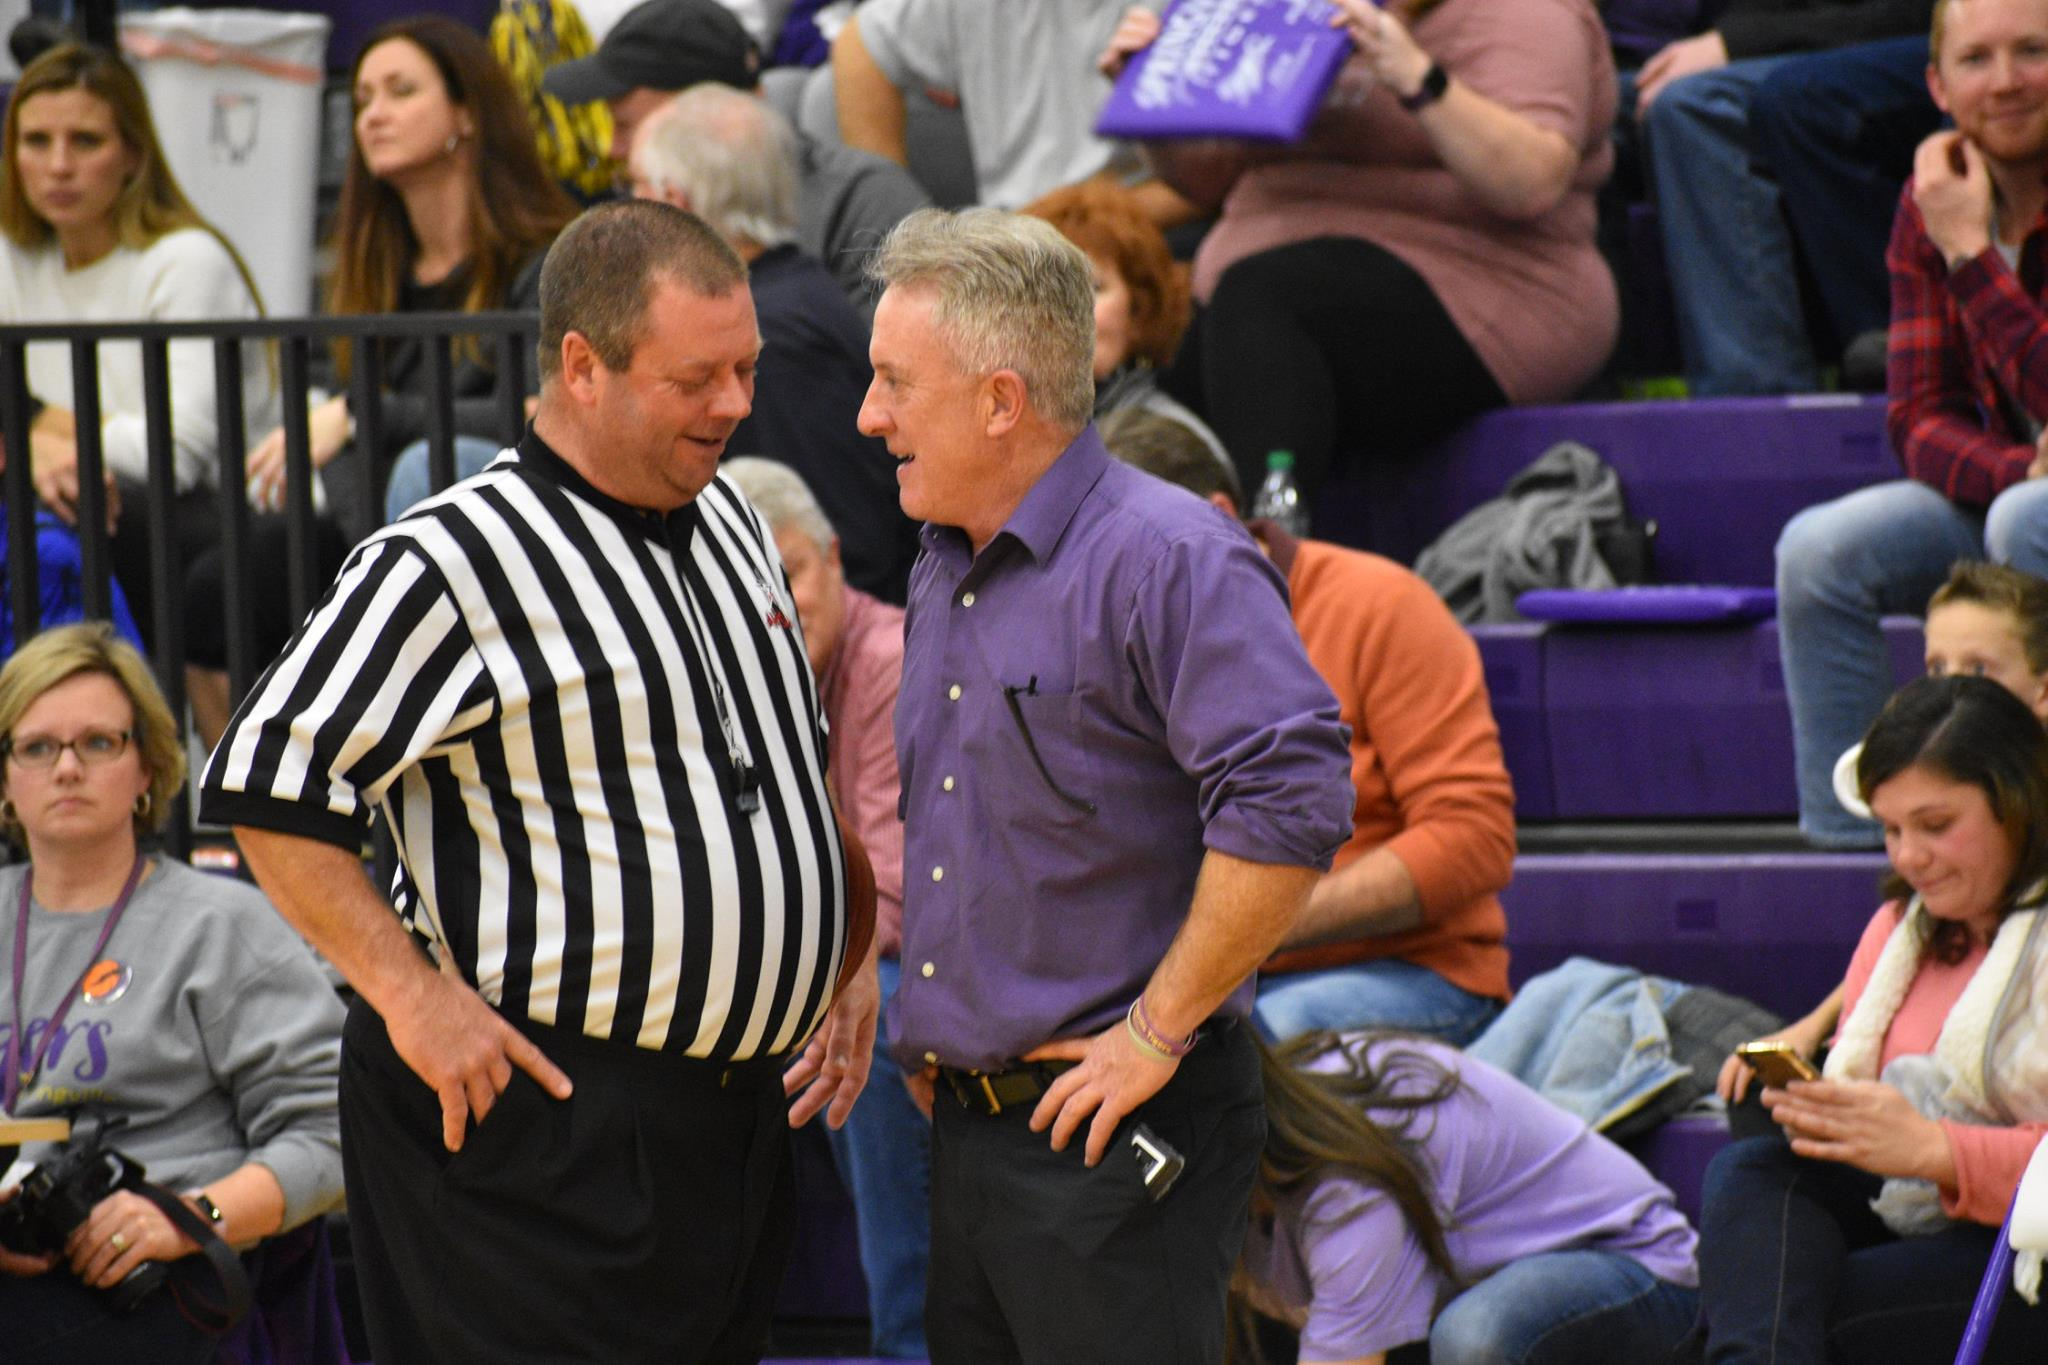 Springville boys' basketball: Head Coach Jeff Smith on 500 wins and 2019 success